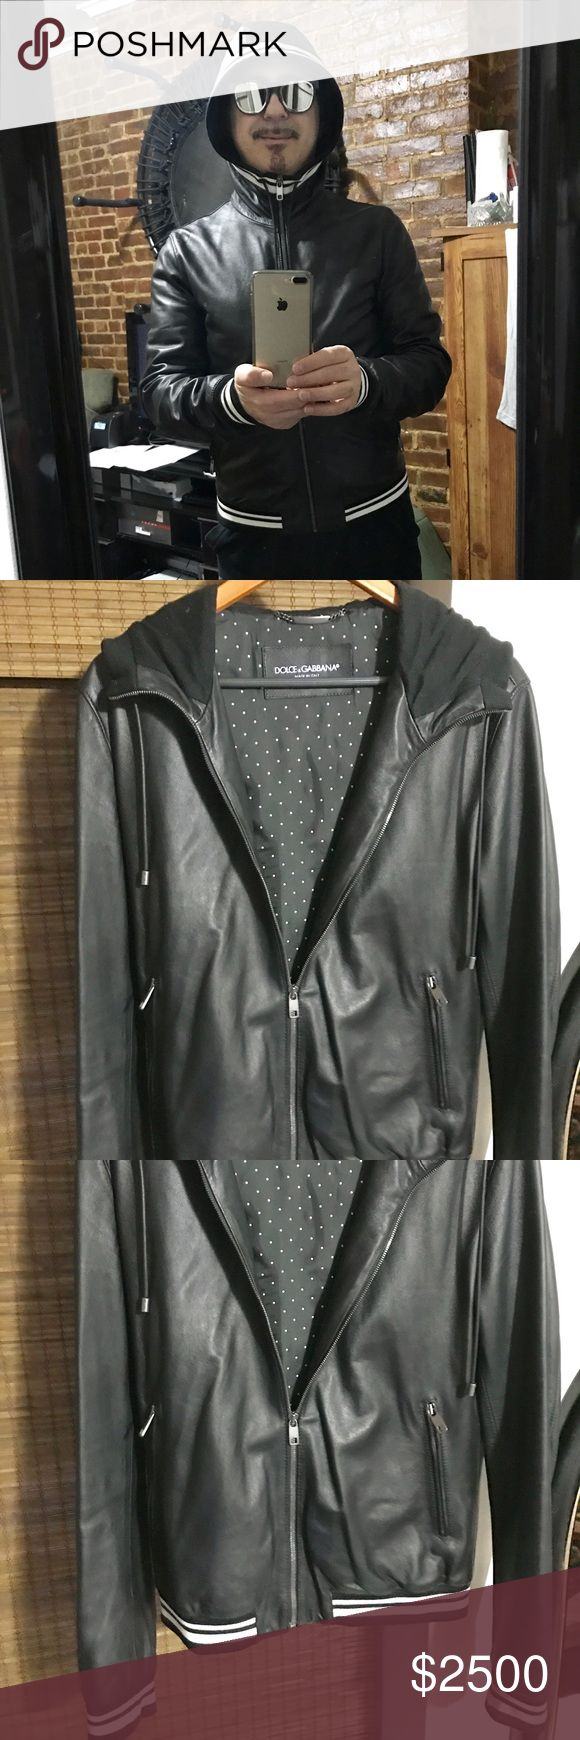 Dolce&Gabbana genuine leather hooded bomber jacket Dolce&Gabbana genuine leather hooded bomber jacket funnel collared  is sleek and sporty .used gently a few times in excellent condition Dolce & Gabbana Jackets & Coats Bomber & Varsity